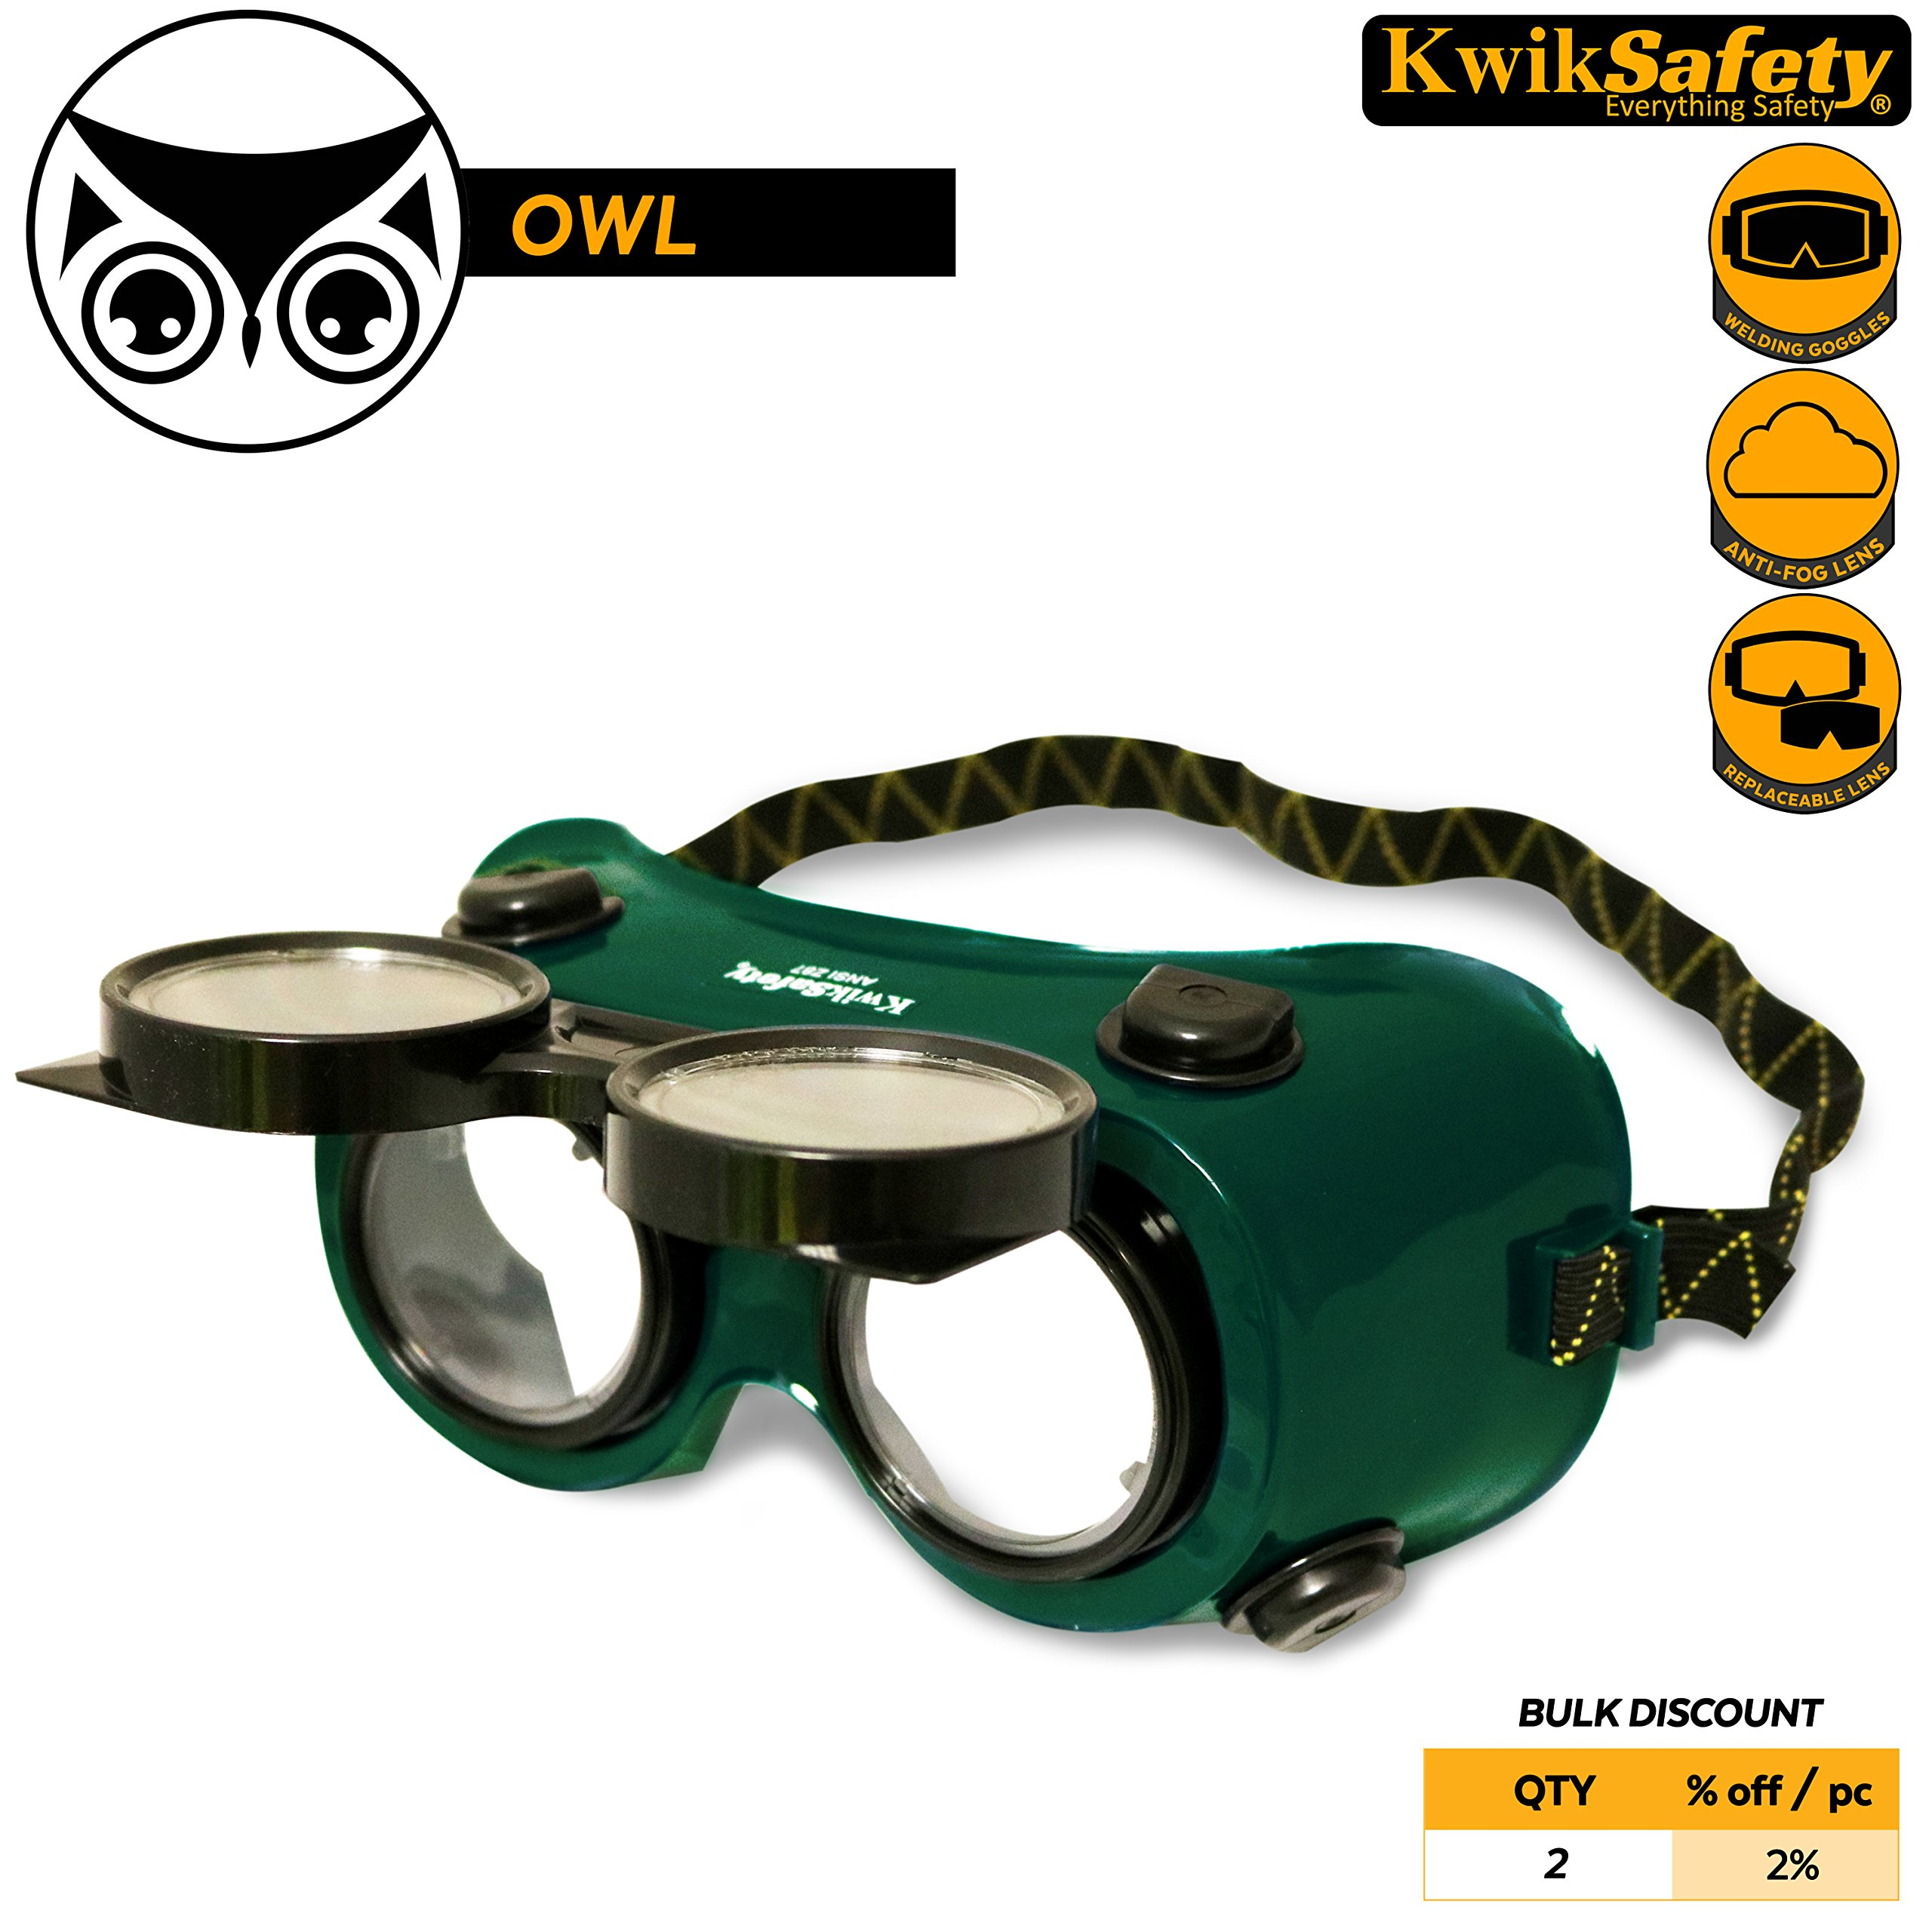 KwikSafety (Charlotte, NC) OWL Industrial ANSI (ANTI-FOG, Snug FIT) Welding Goggles | Flip-Up Shade 5 | Ventilation Safety Plasma Jet Welding Torch Brazing Flame Cutting Gas Oxy-Acetylene Green